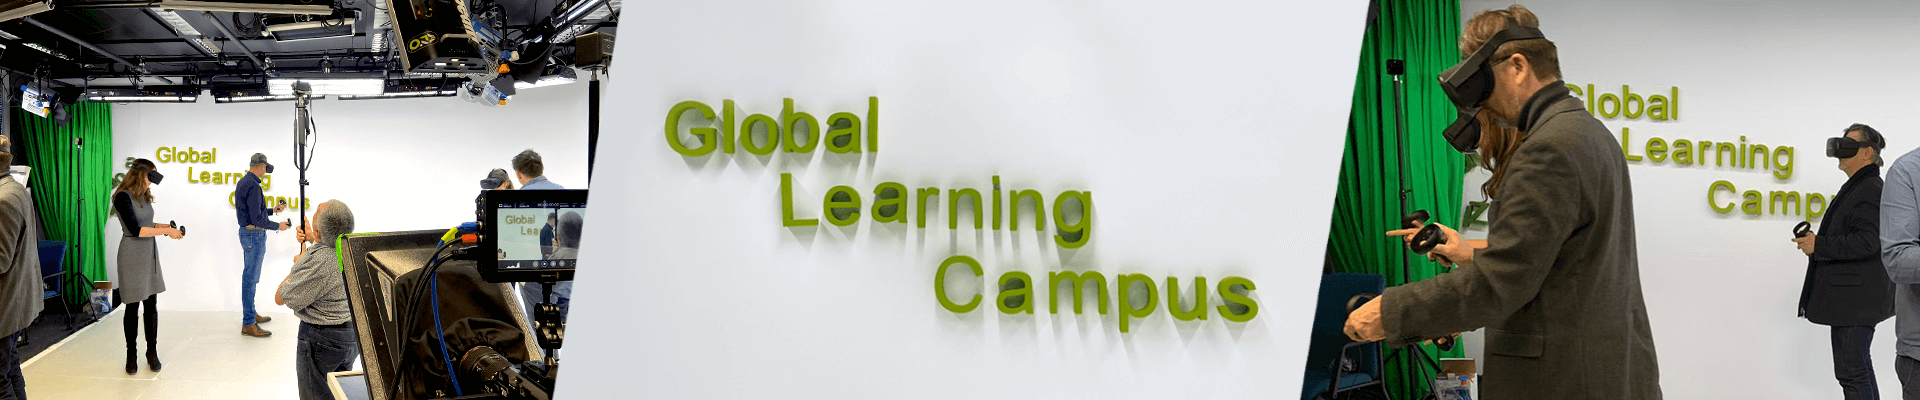 Learning_Campus_01